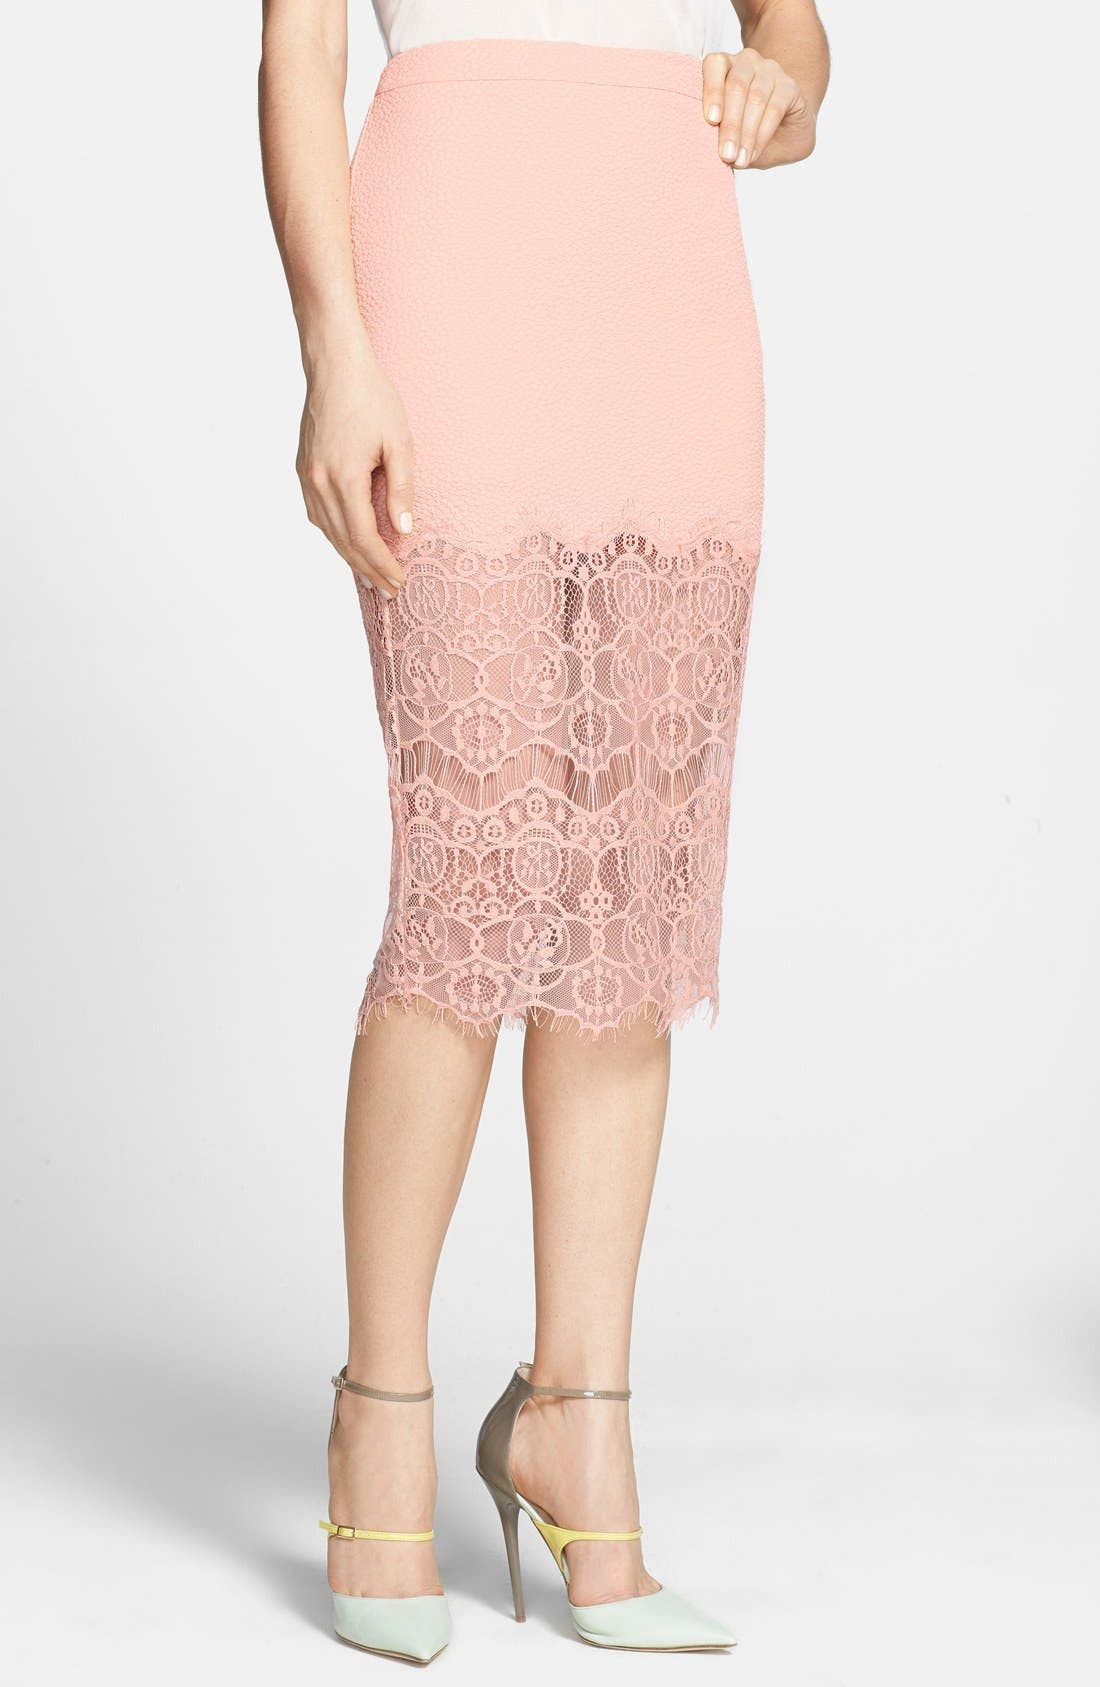 Alternate Image 1 Selected - ASTR Textured Lace Hem Pencil Skirt